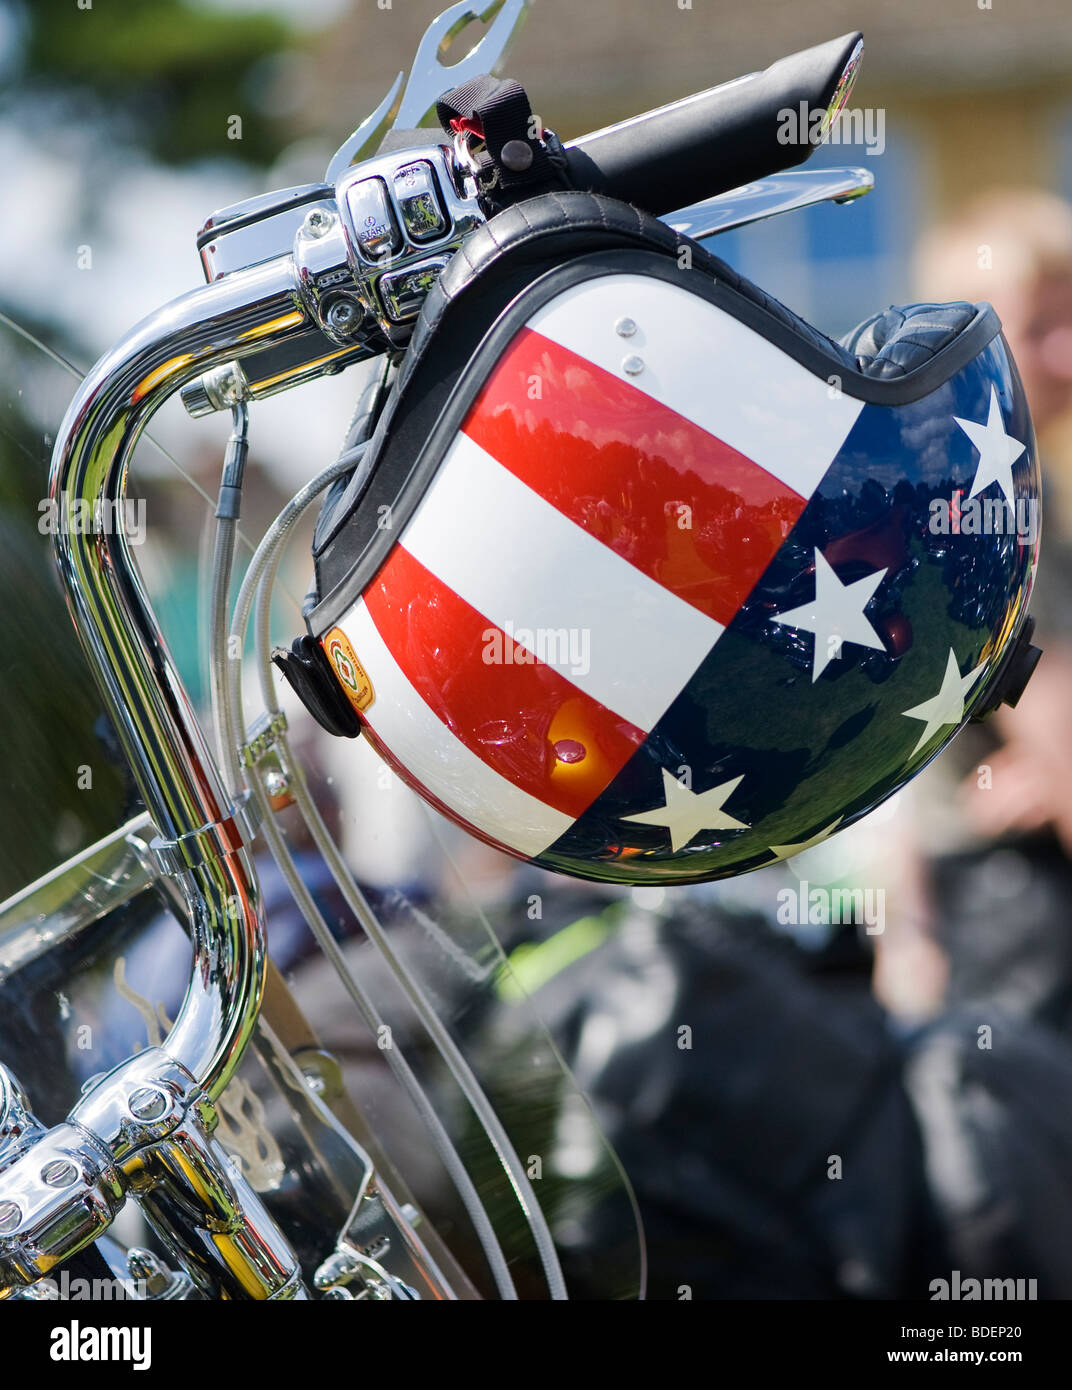 Harley Davidson motorcycle with a custom American 'stars and stripes flag' helmet on the handlebars - Stock Image